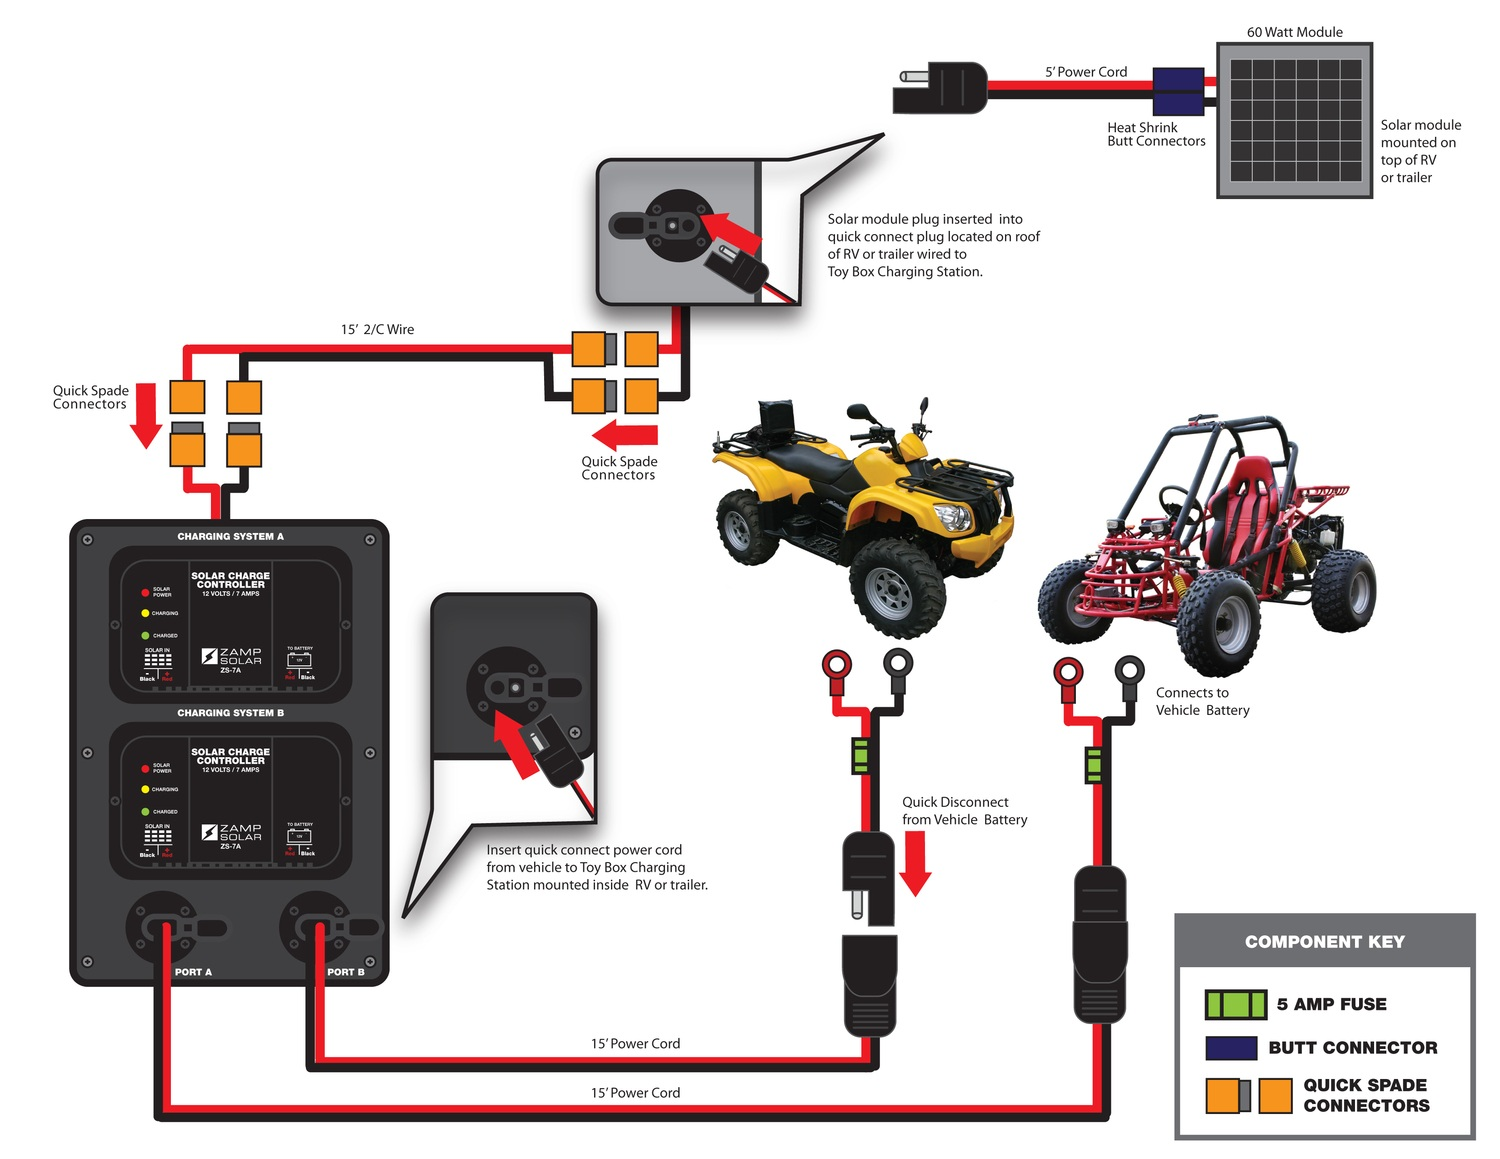 Wiring Diagram For Solar Battery Charger Push Button Start Toybox Charging System